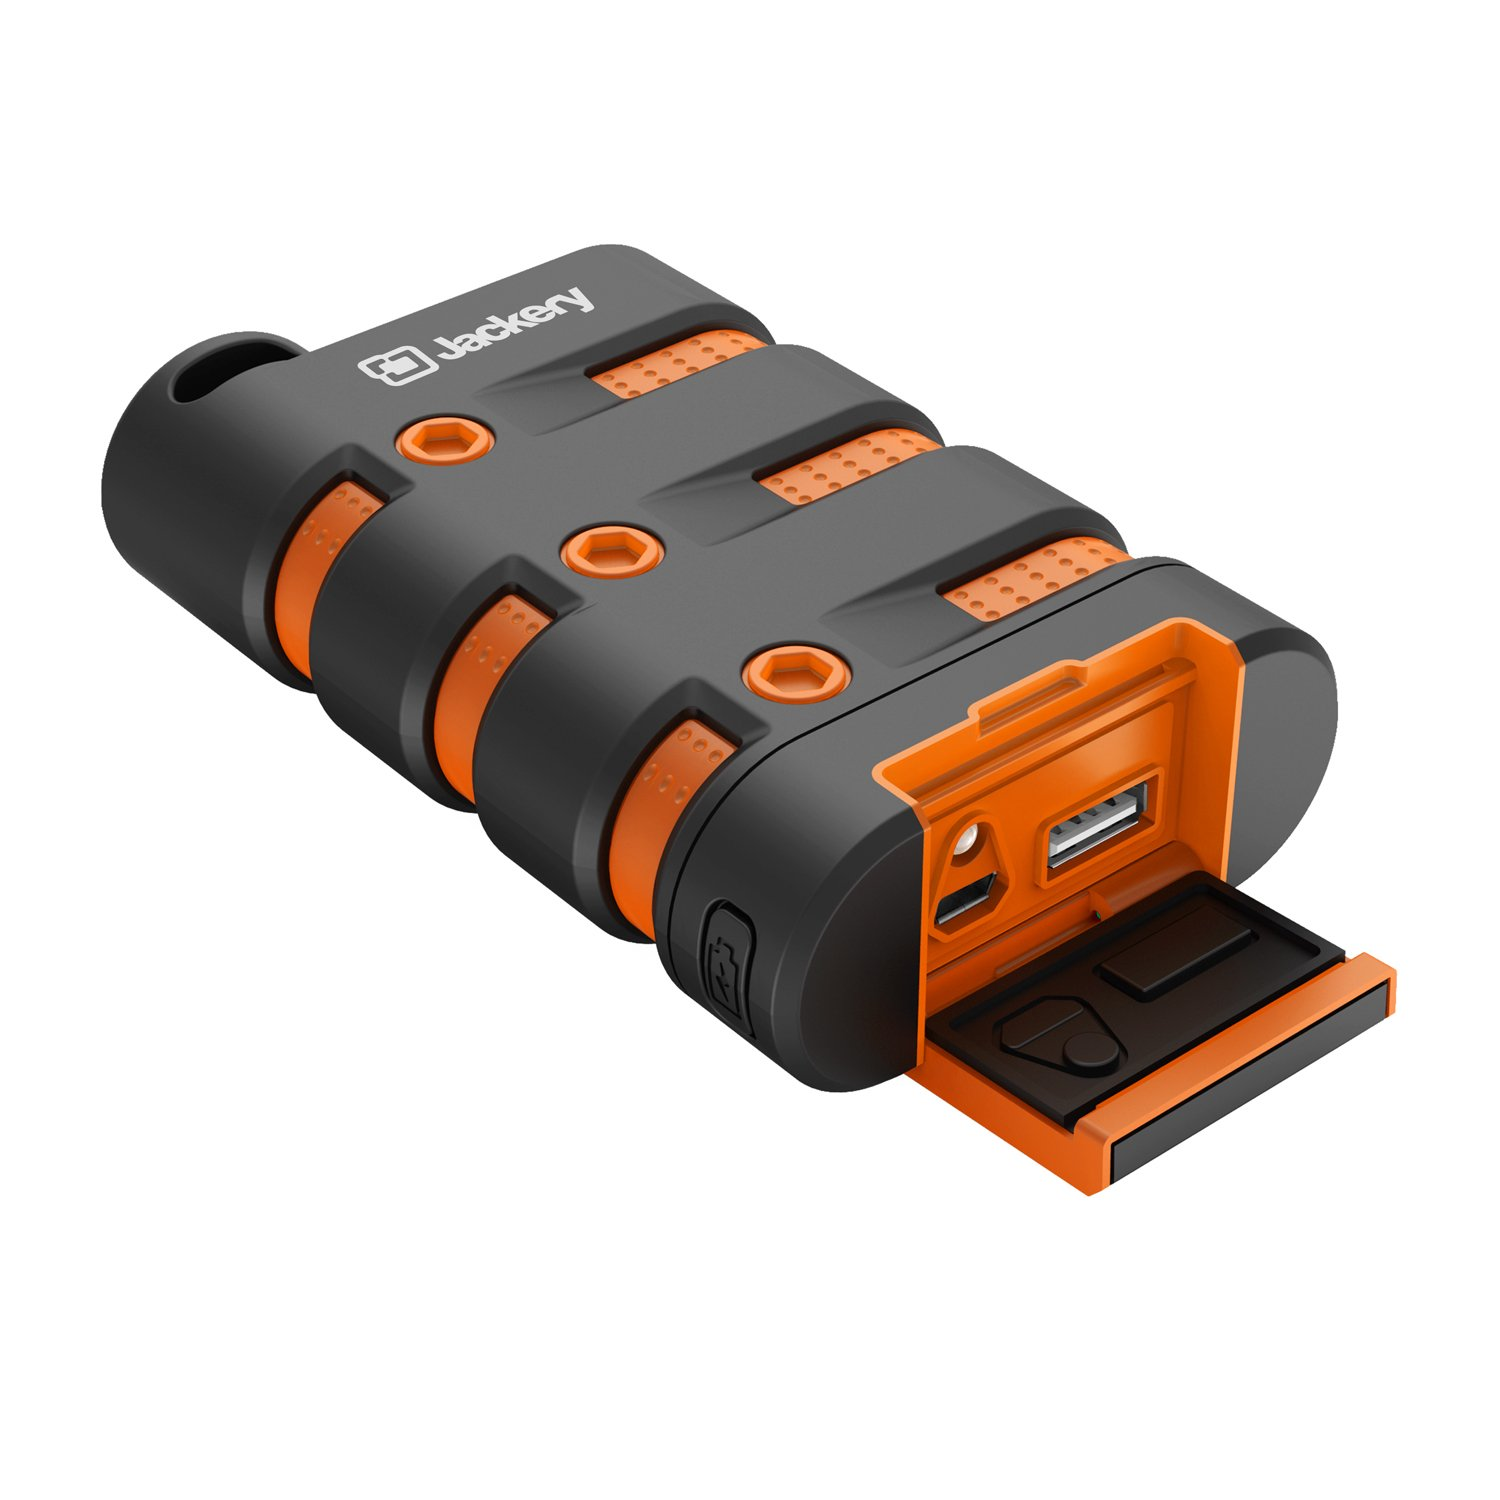 Waterproof Charger Portable Charger, Jackery Armor Power Bank 9000mAh External Battery [Water/Shock/Dust Proof] with Emergency LED Flashlight for Camping, Hiking and Other Outdoor Activities